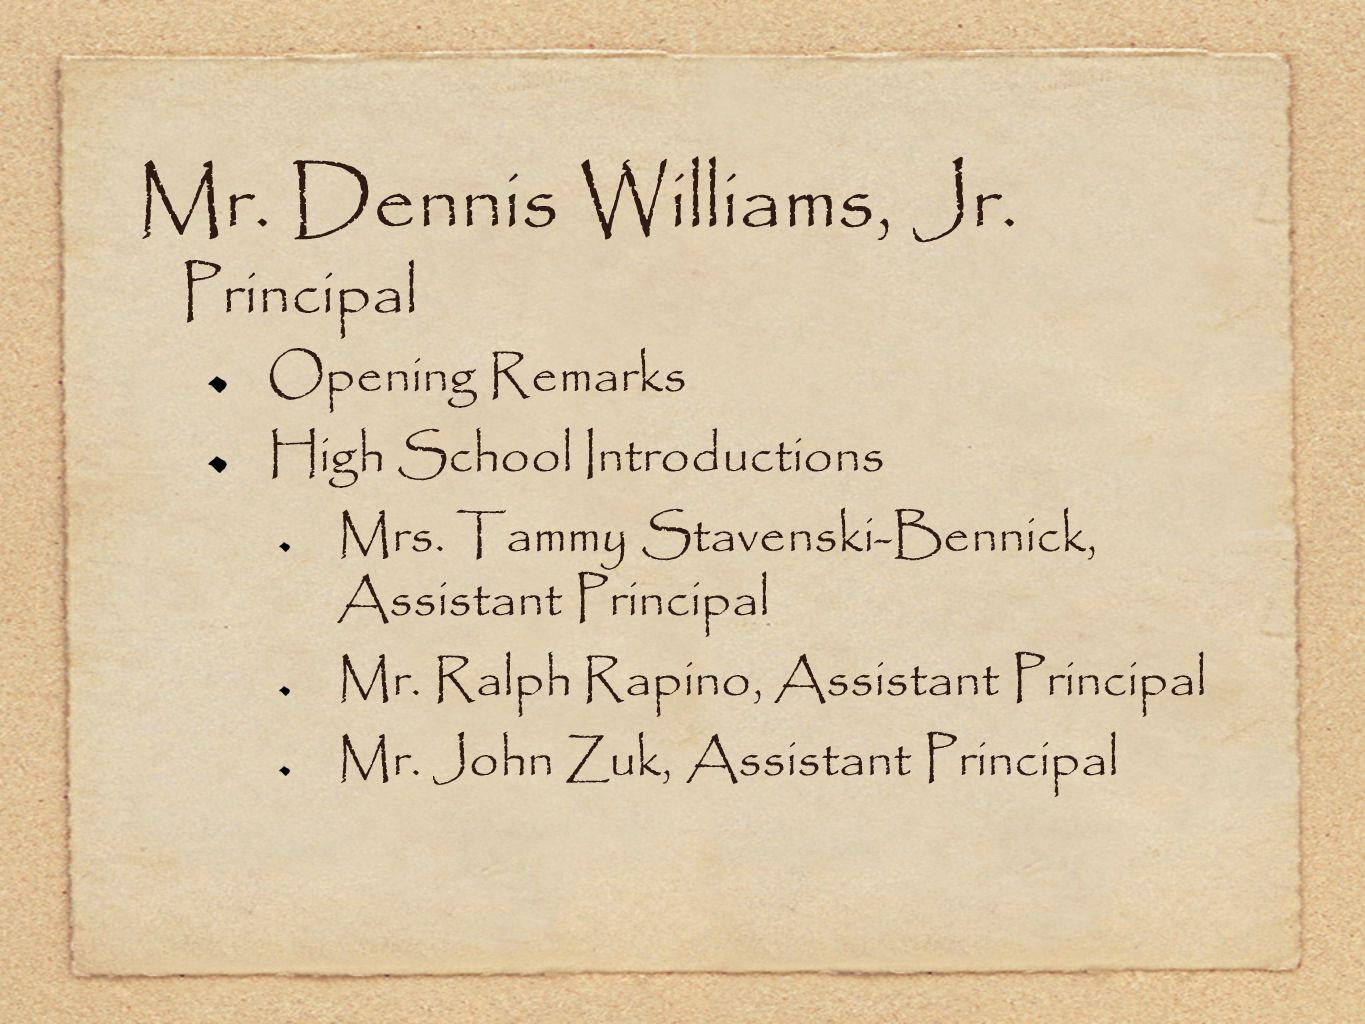 Mr. Dennis Williams, Jr. Principal